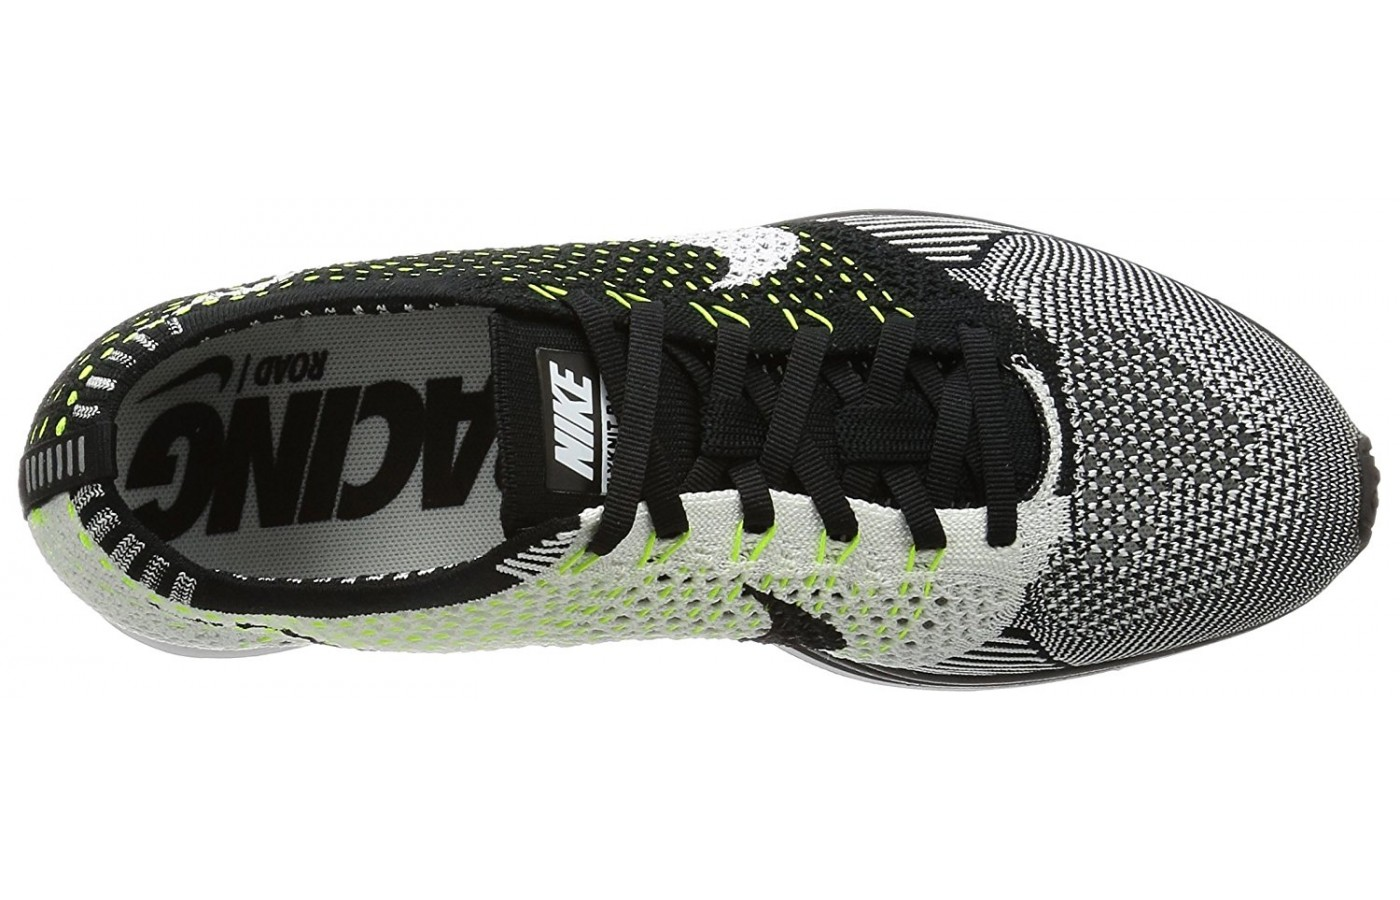 Top view of the Nike Flyknit Racer running shoe